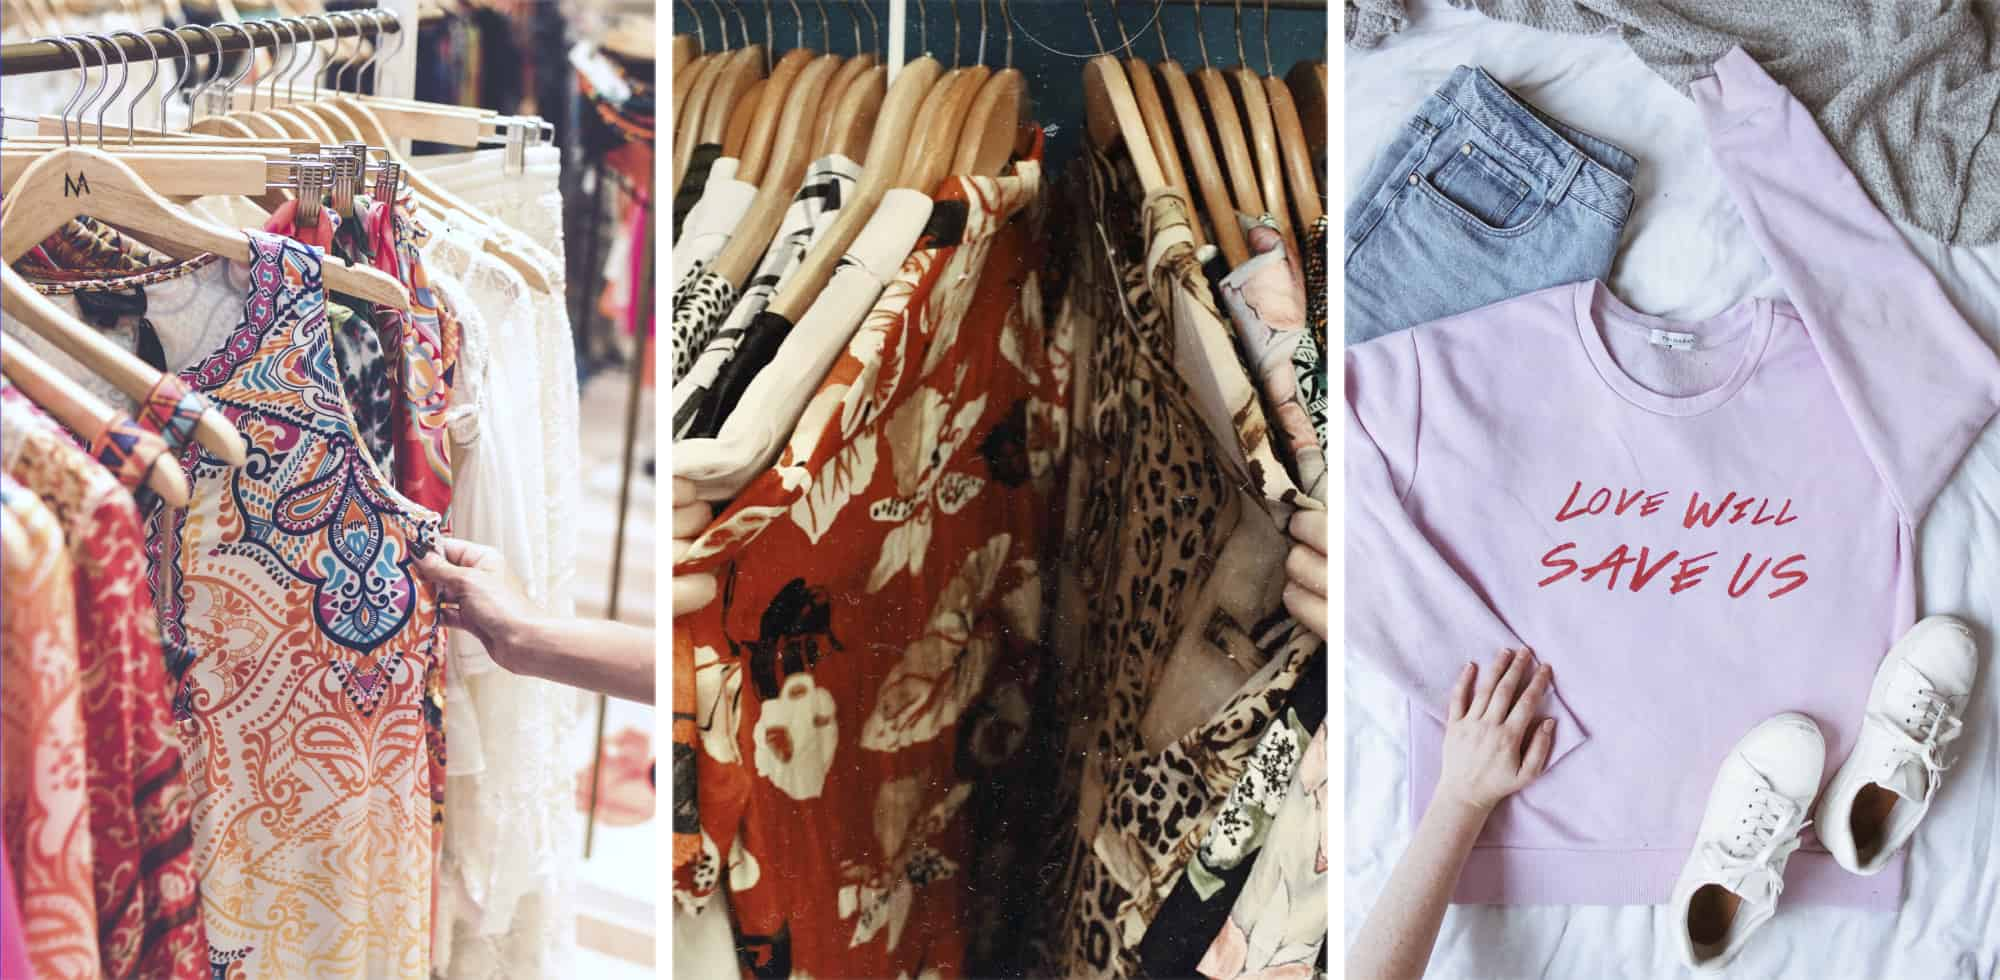 Tips for Shopping at Primark without Going Crazy